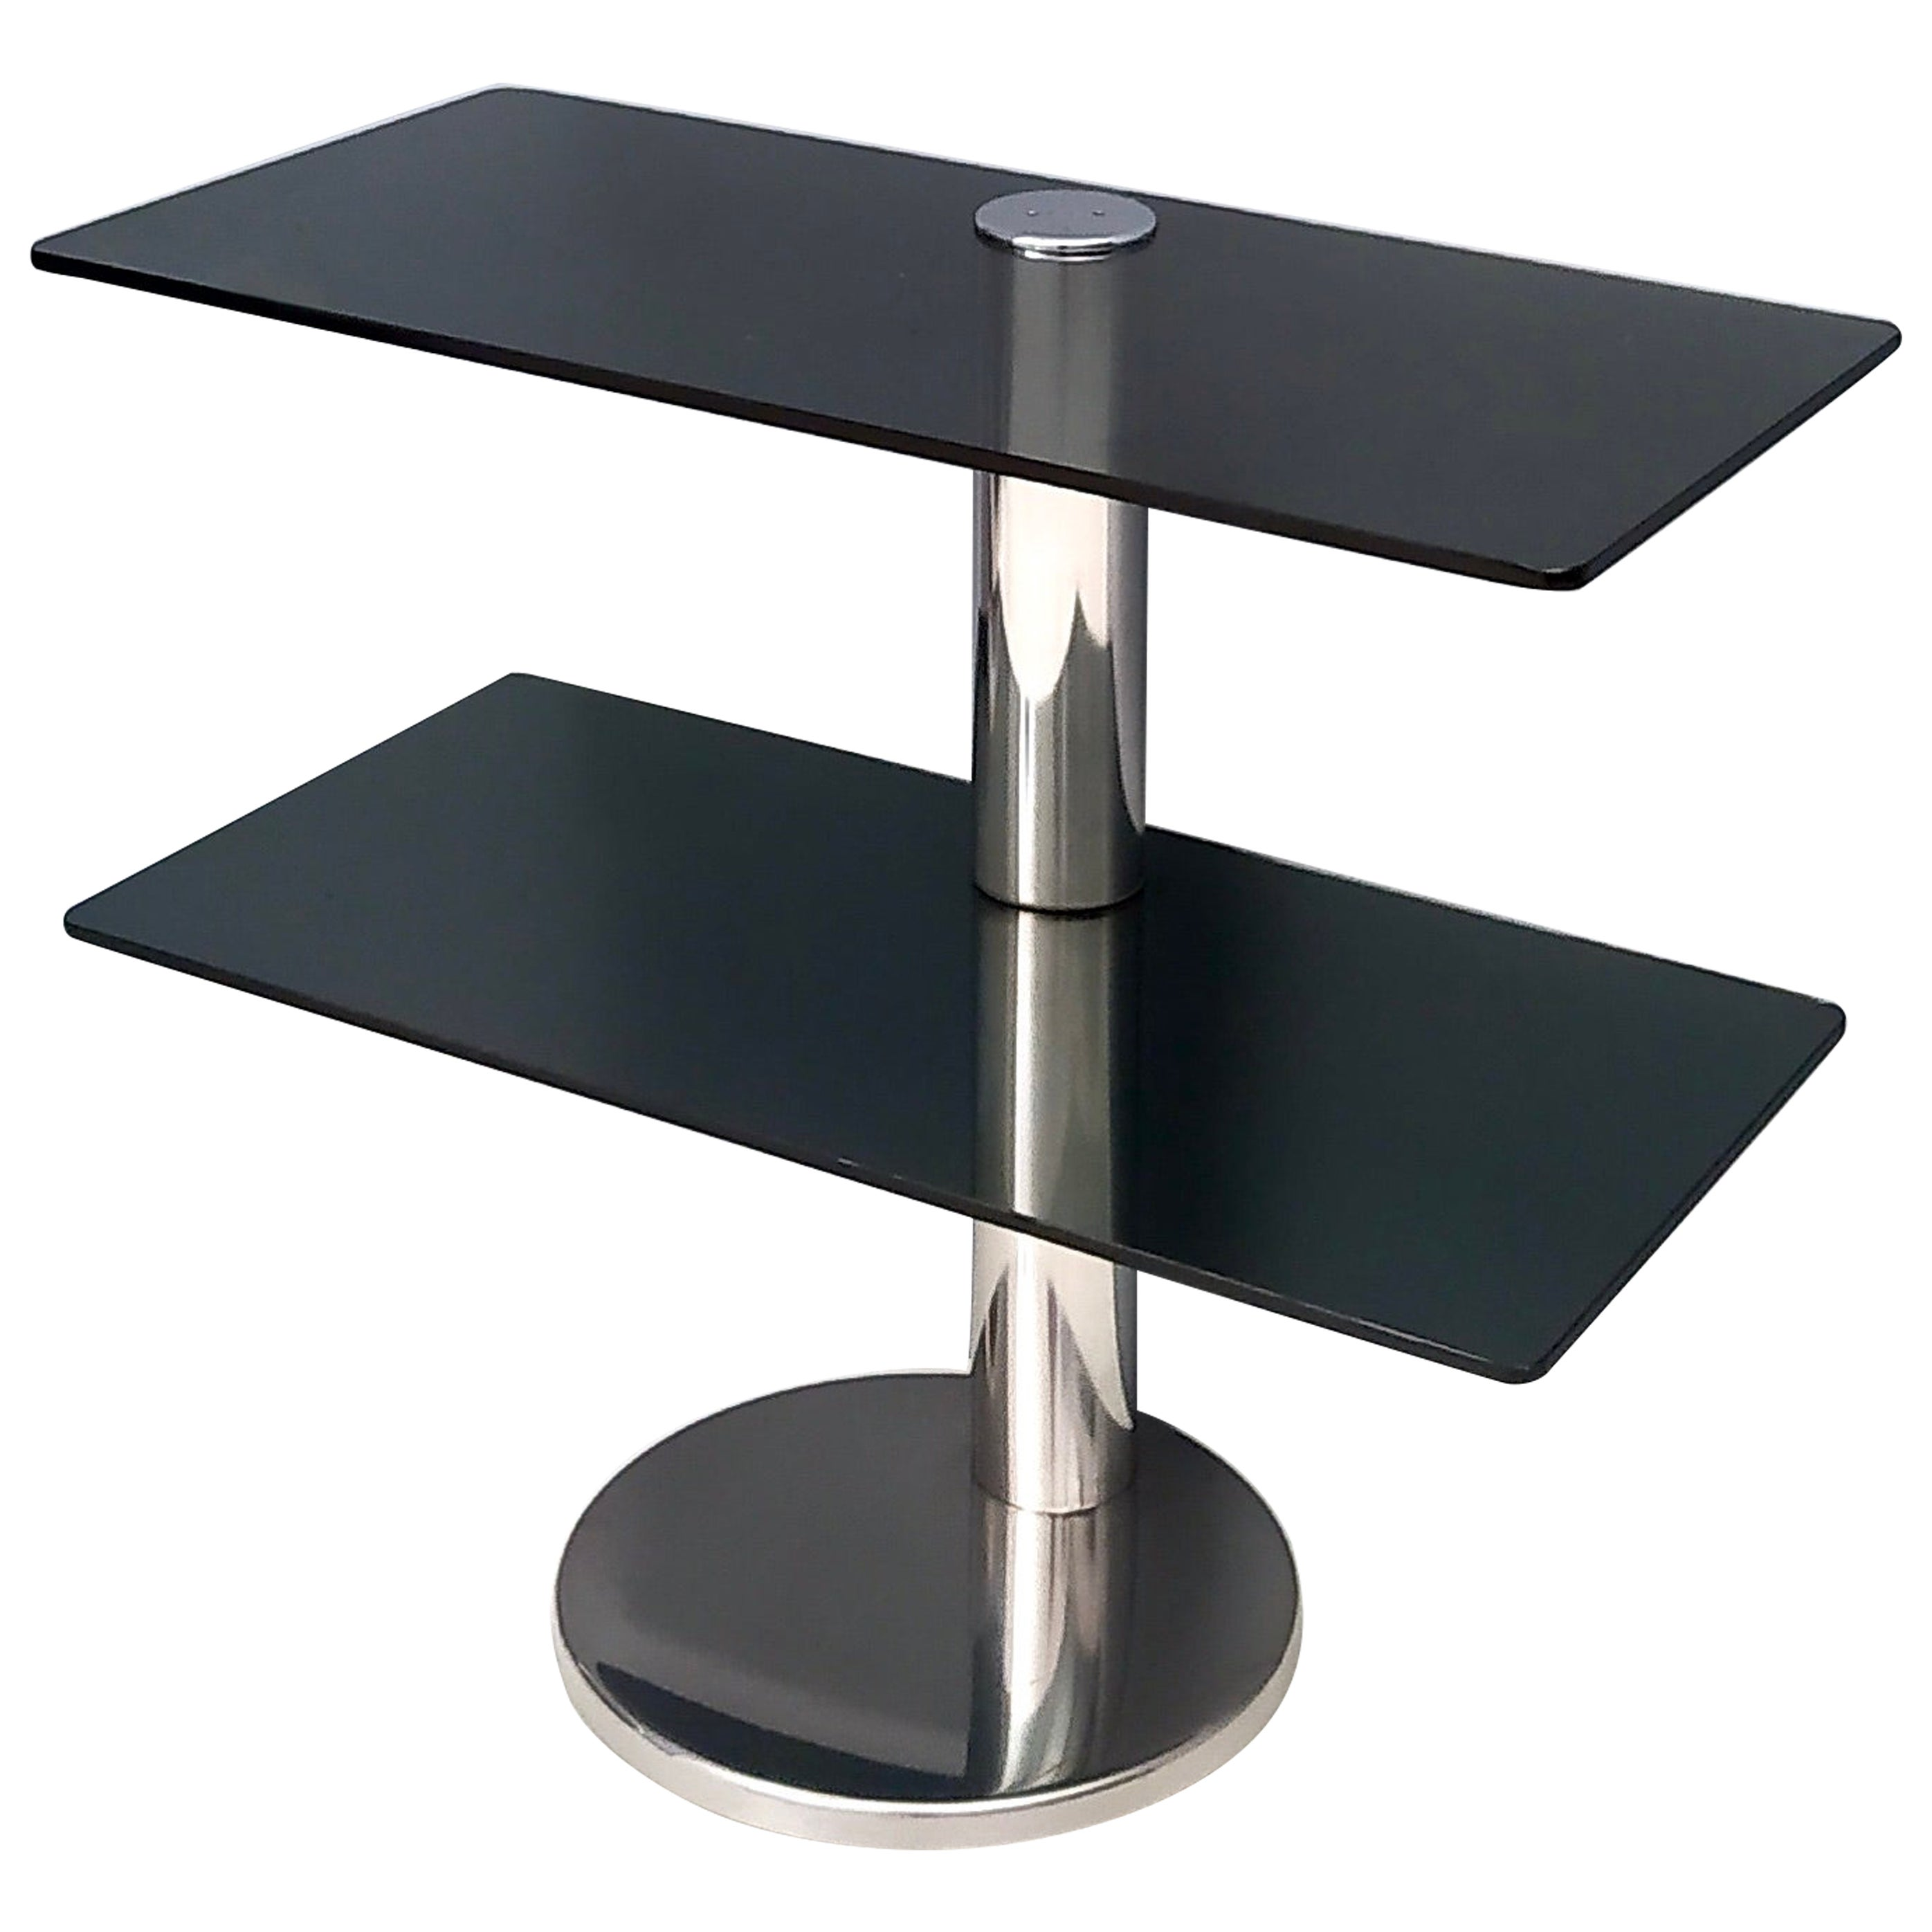 Chromed Metal Console Table with Two Dark Grey Glass Shelves, Italy, 1970s